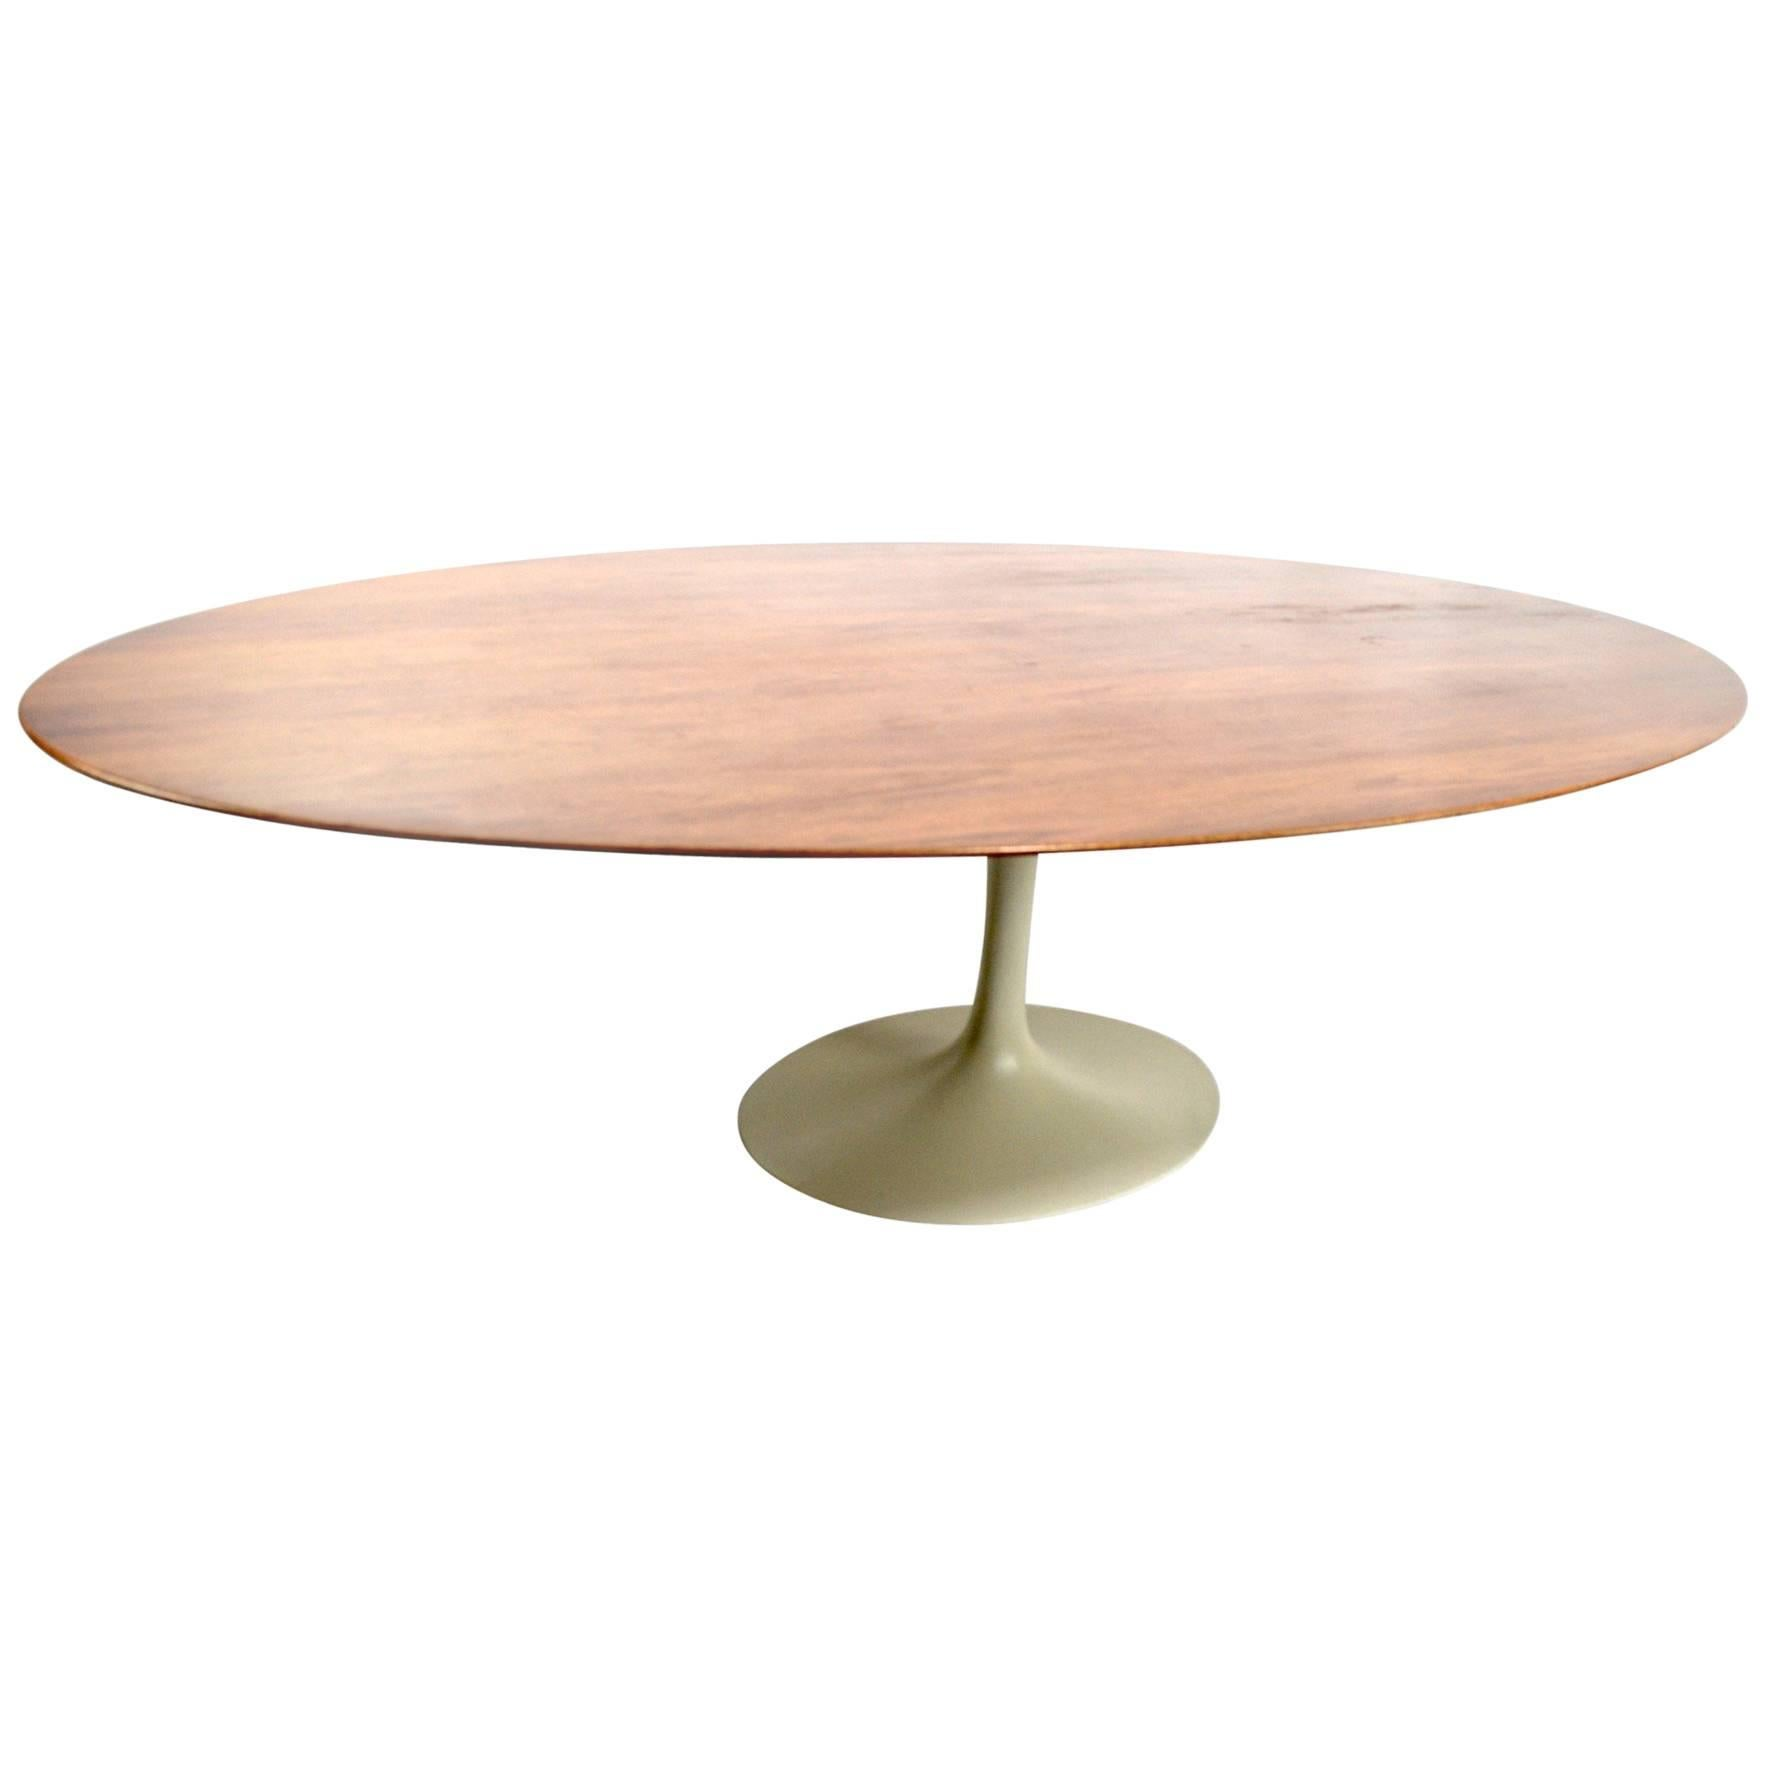 dcf007670bec Saarinen for Knoll Oval Dining Table at 1stdibs